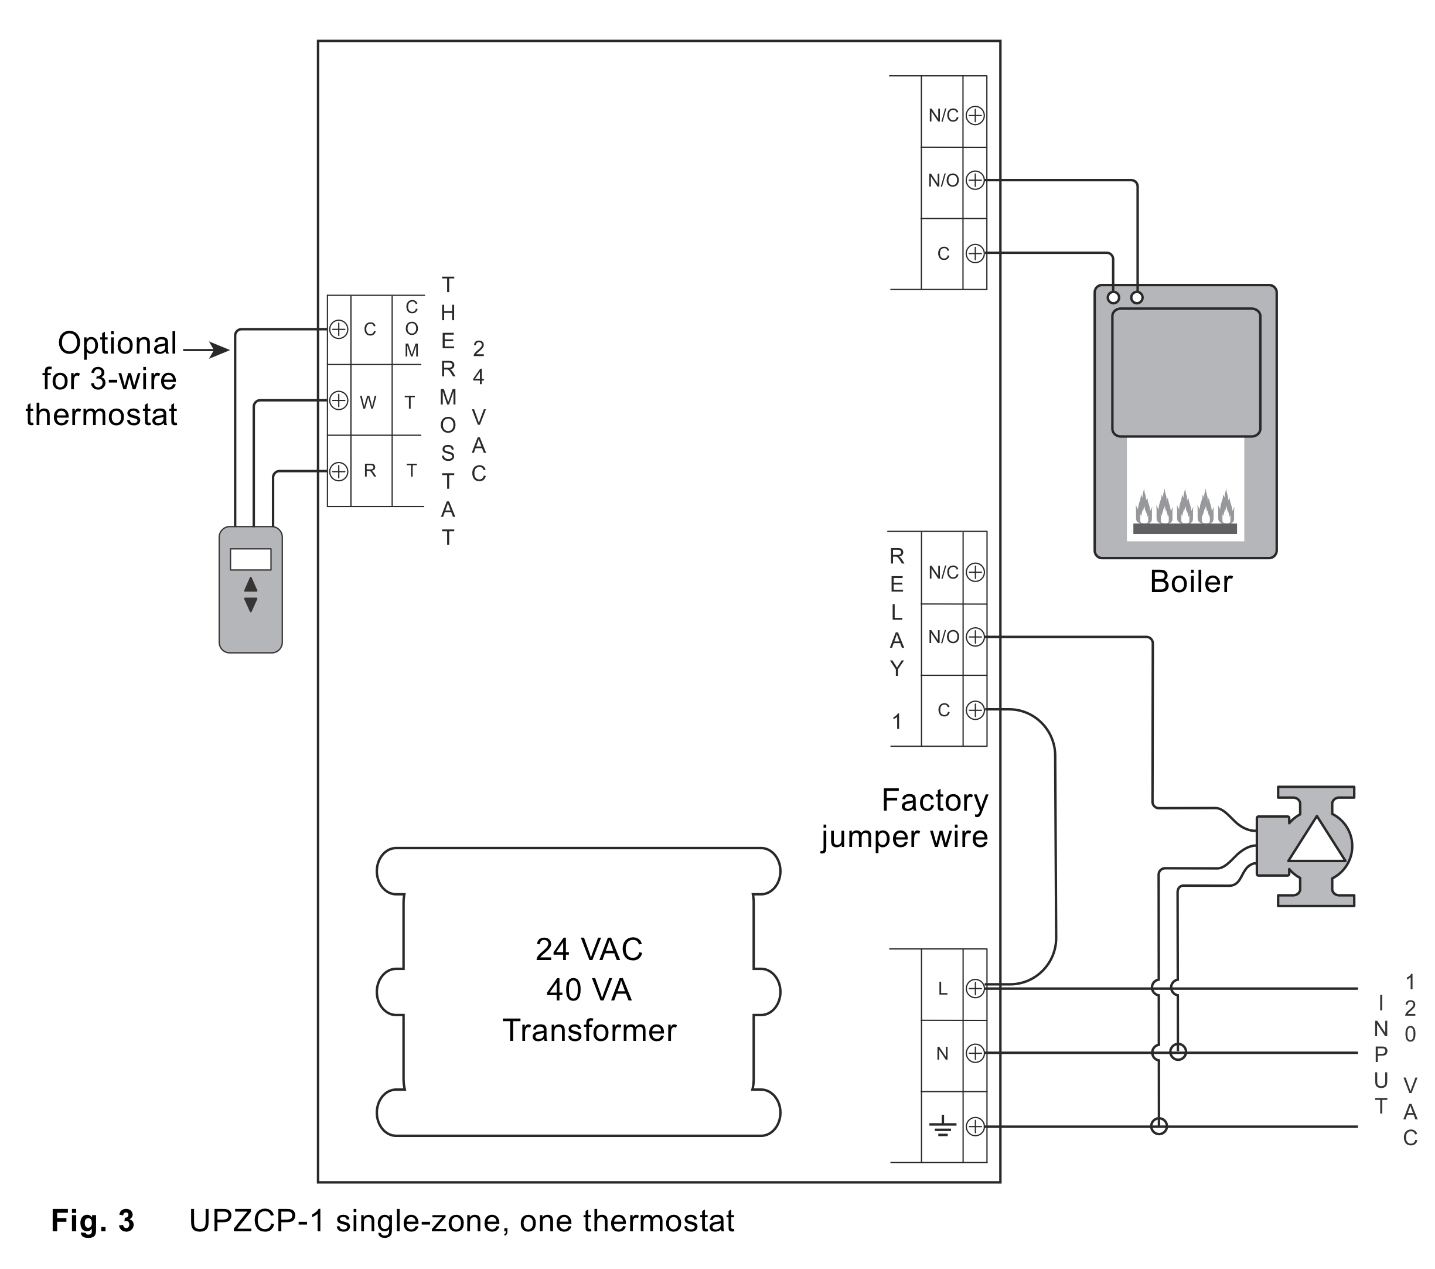 grundfos circulating pump wiring diagram Download-Also included here is the wiring schematic for the relay I m particularly concerned about having two transformers in the same system 11-j